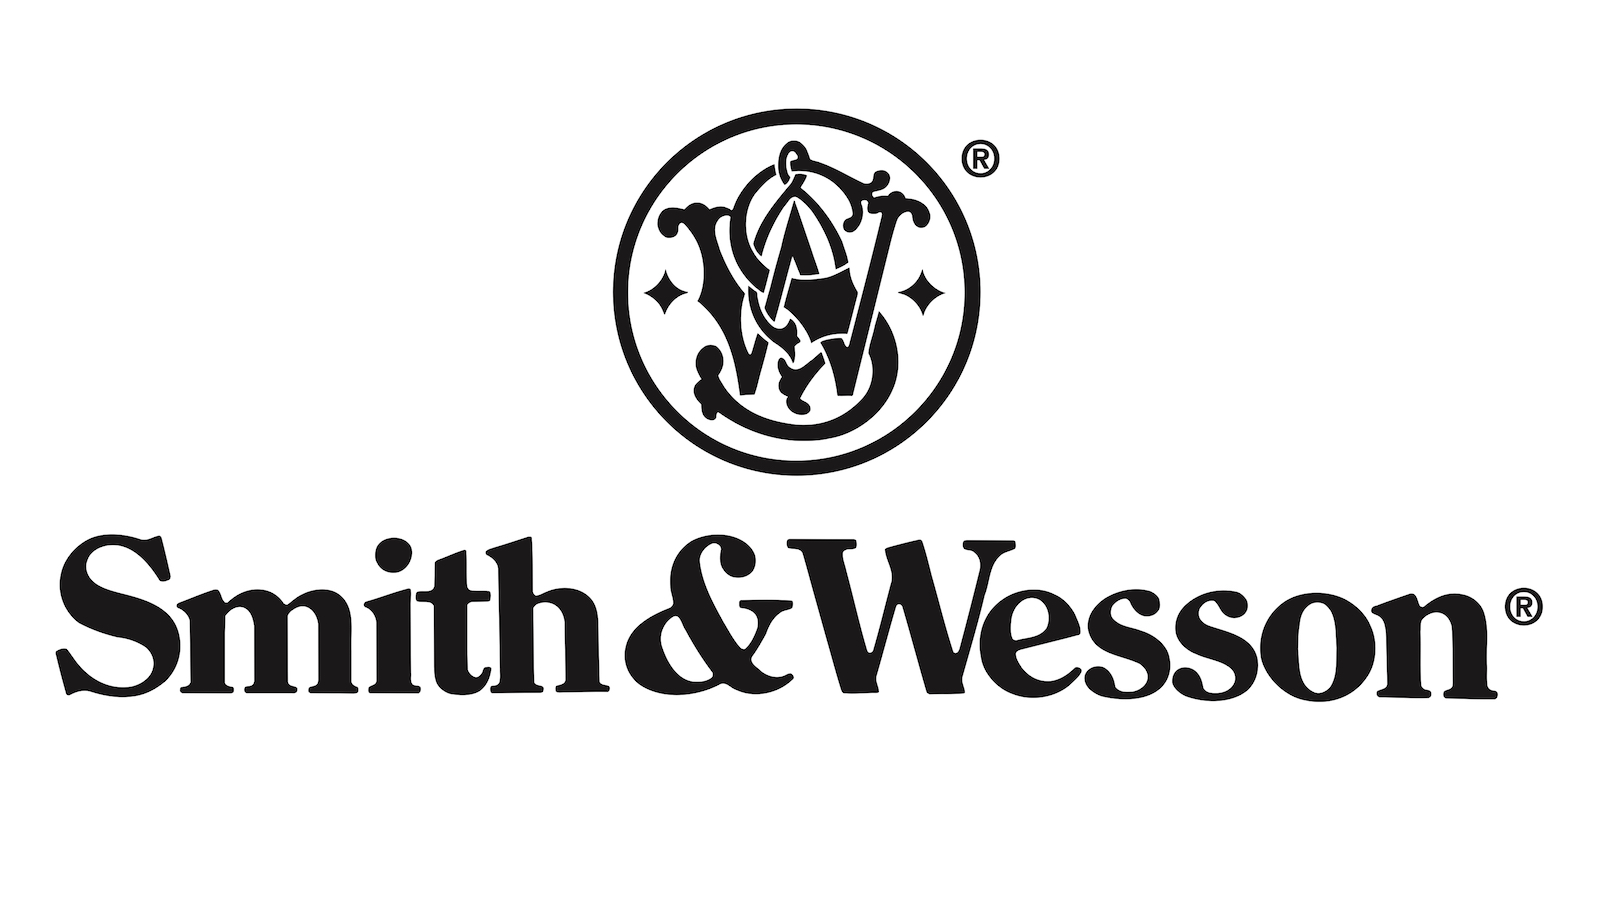 Major Sponsor - Smith & Wesson